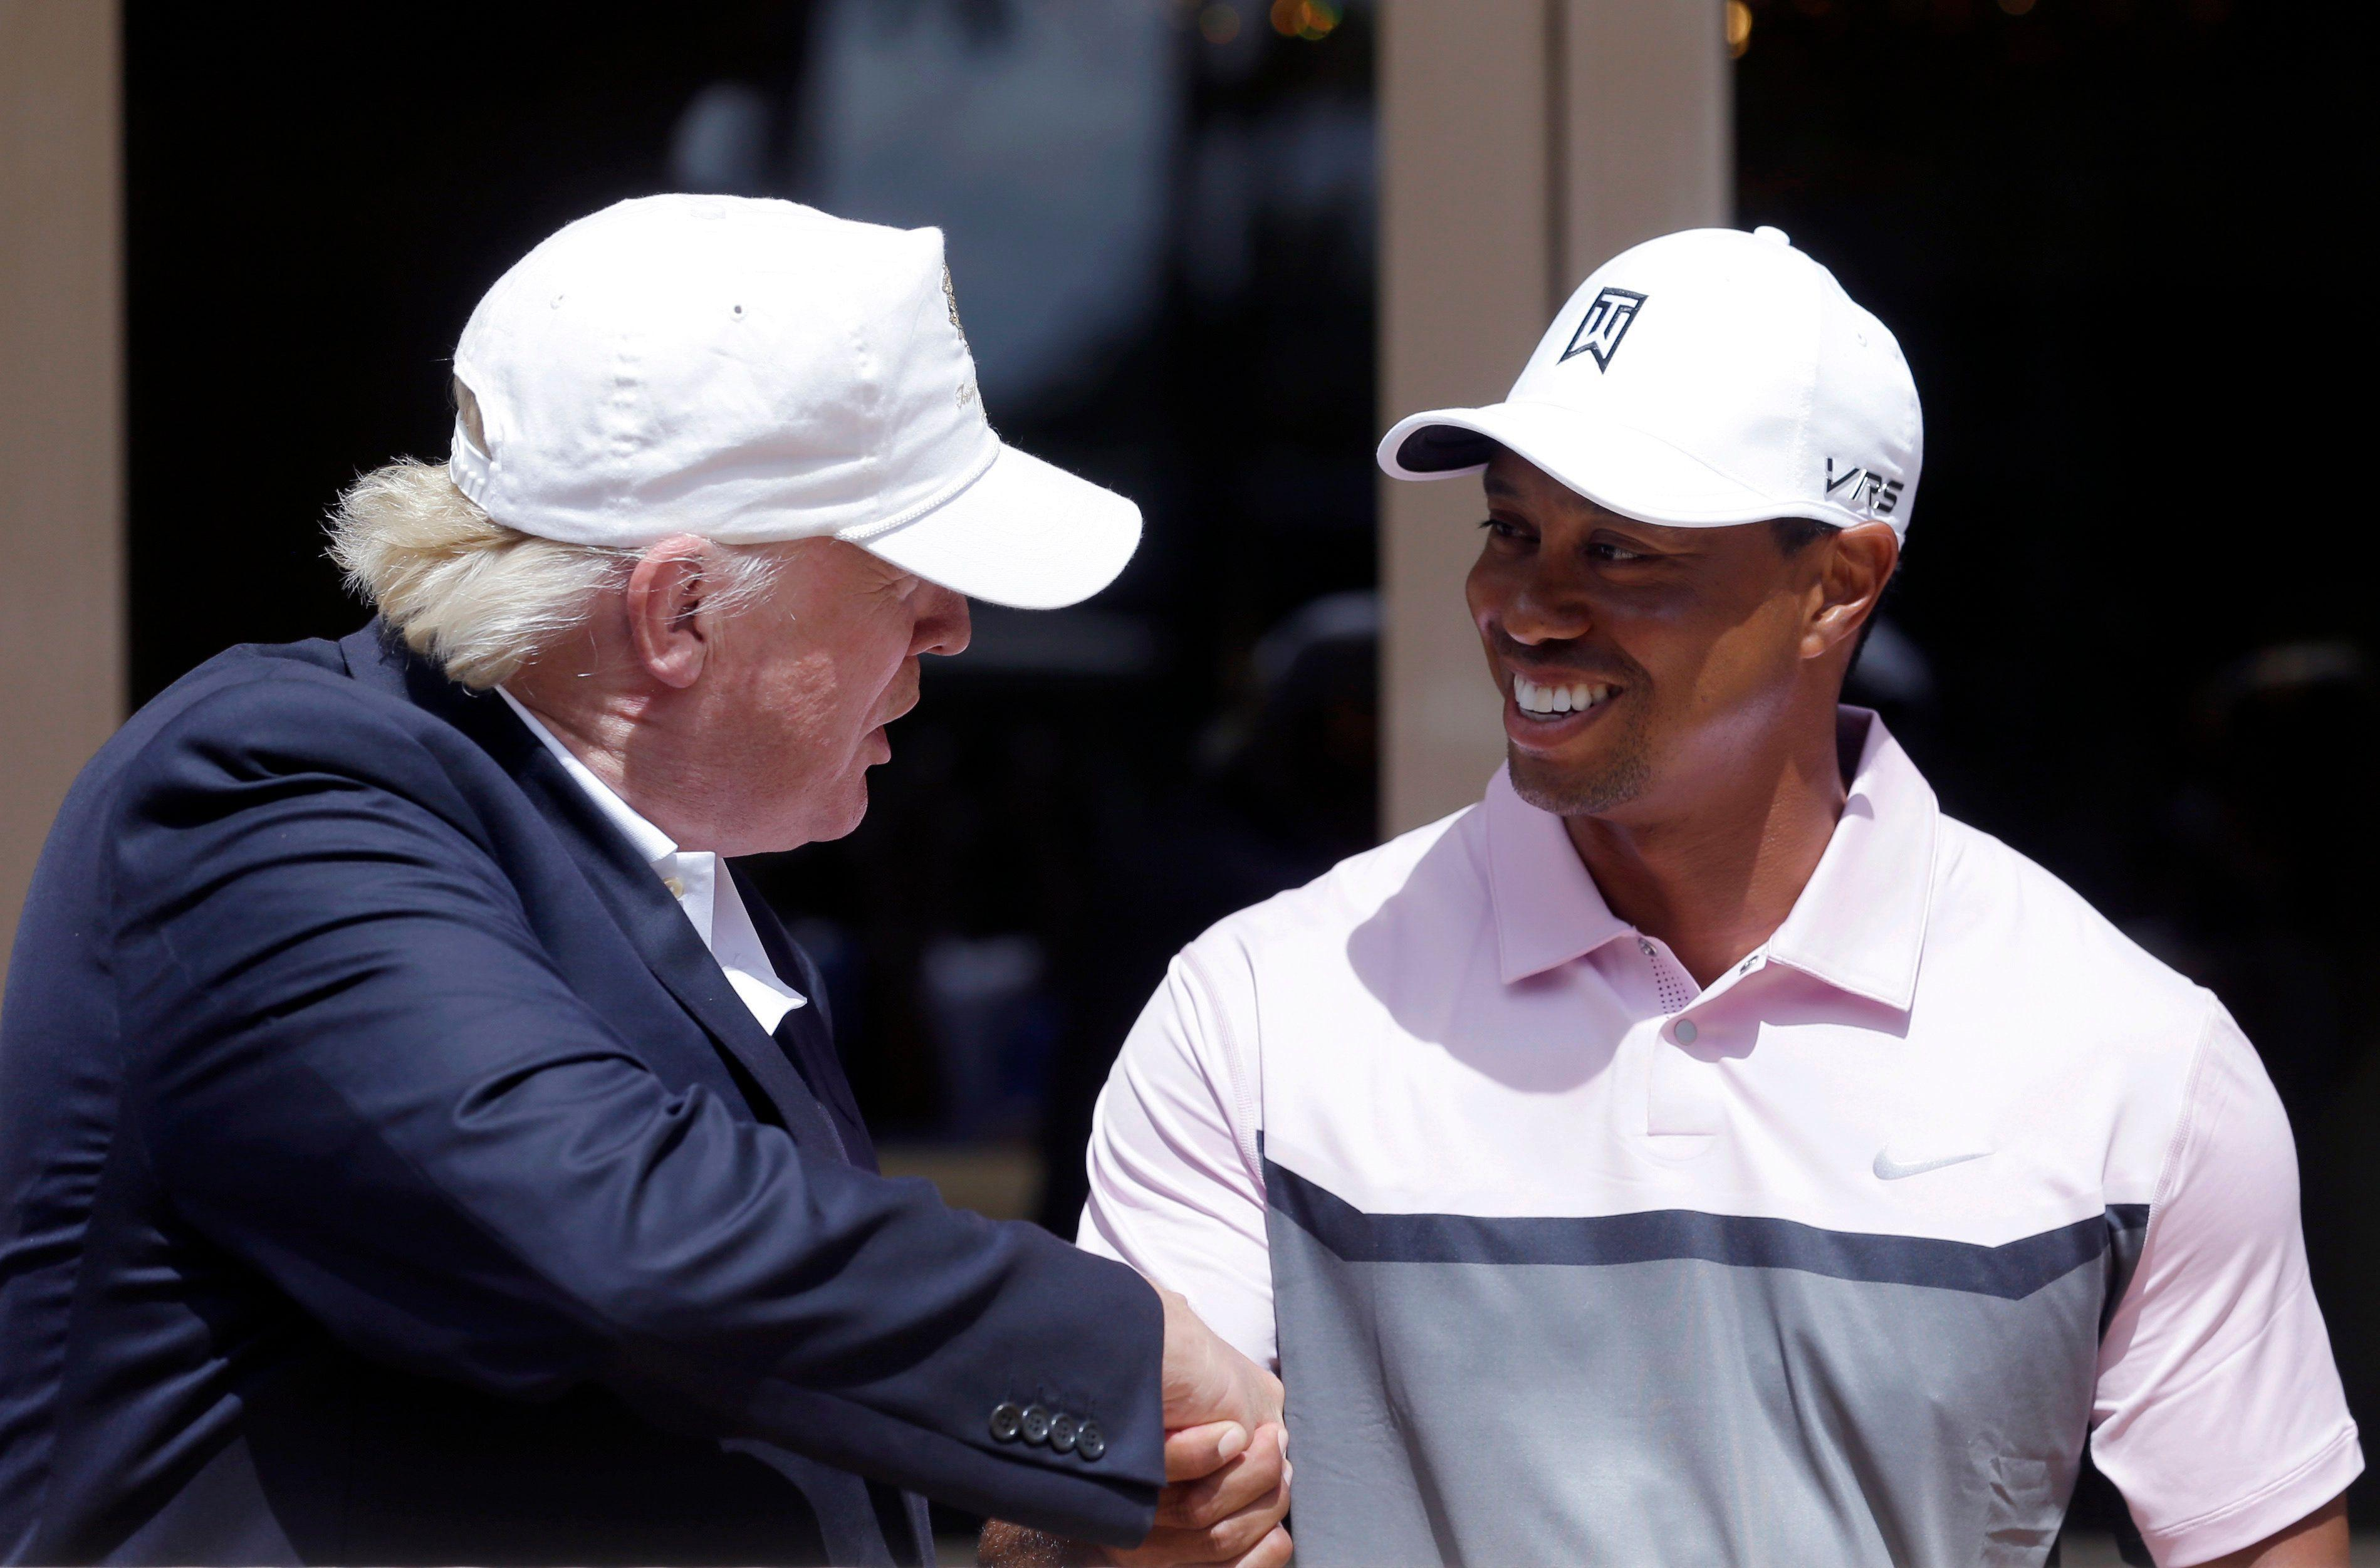 Pro golfers say President Trump 'cheats at the highest level' in new book